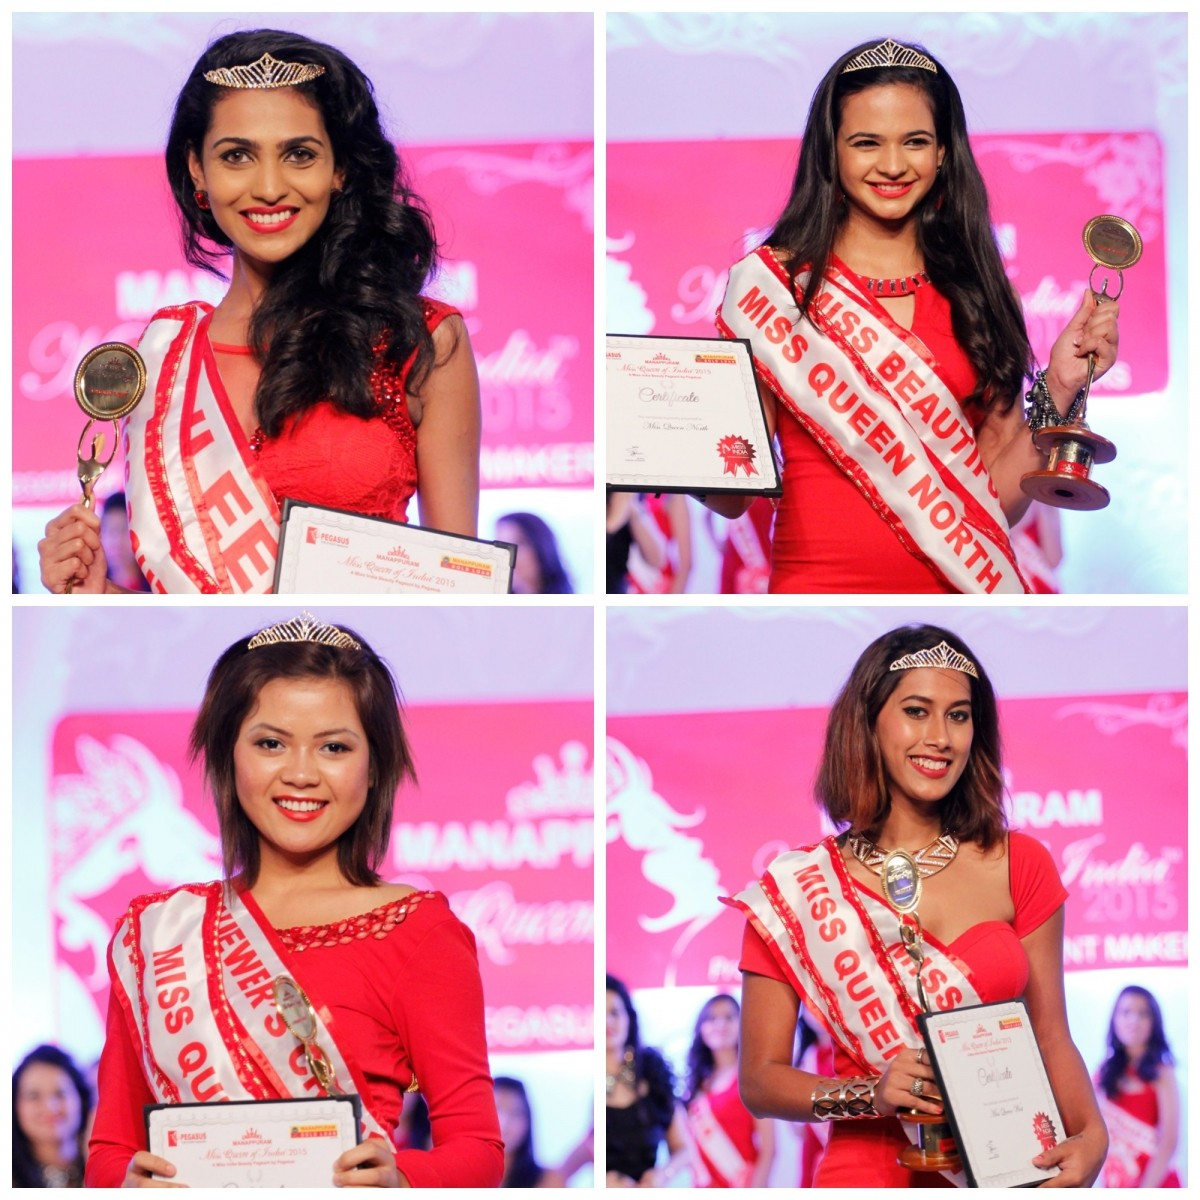 Miss Queen of India participants who won regional titles